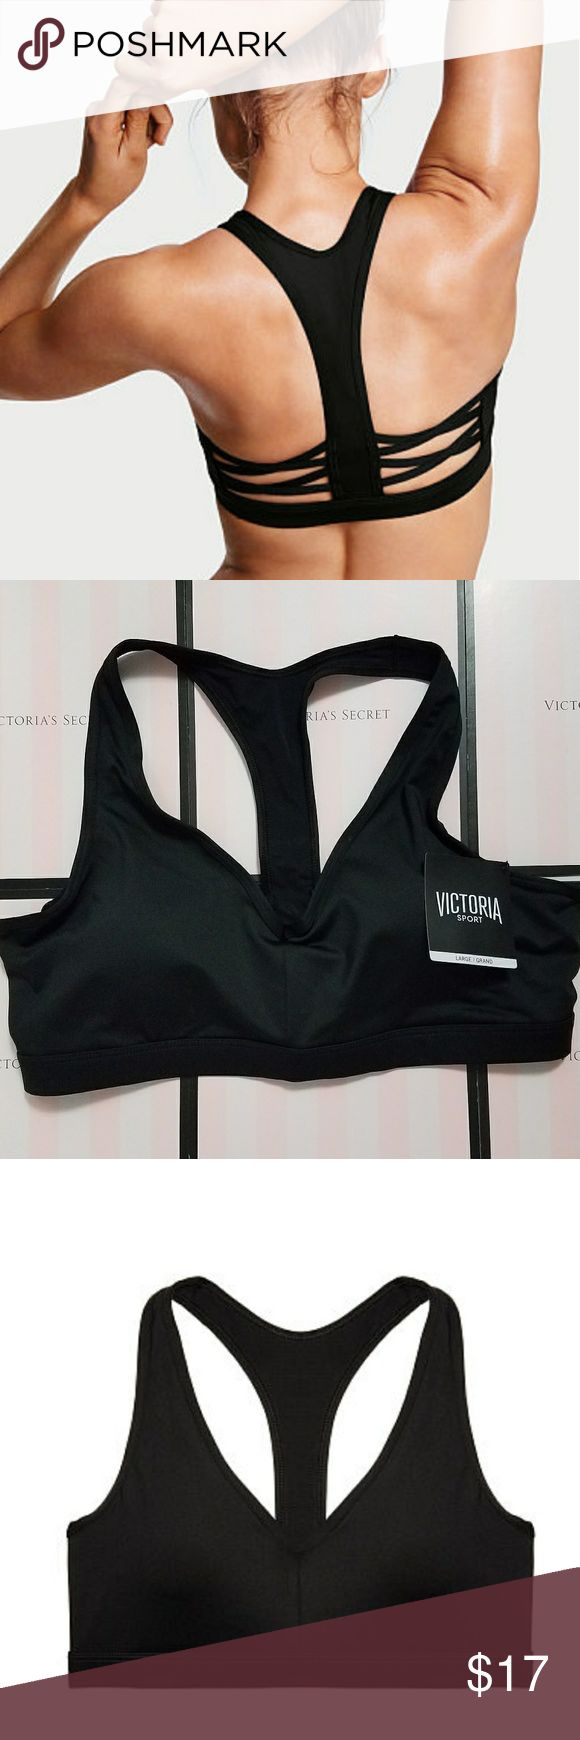 HP Victorias secret caged racerback sports bra Black NWT victorias secret caged racerback sports bra. Size Large.  A pullover style provides minimum support that is perfect for yoga, jogging, or other light activities!  The bra also has removable padding for support and shape, and cute detailing along the back.  Also features body-Wick technology!  Retails for $24.50, NWT.  According to the Victoria's secret website, a size large sports bra best fits bra sizes 38A-C or 36C-D. Victoria's…